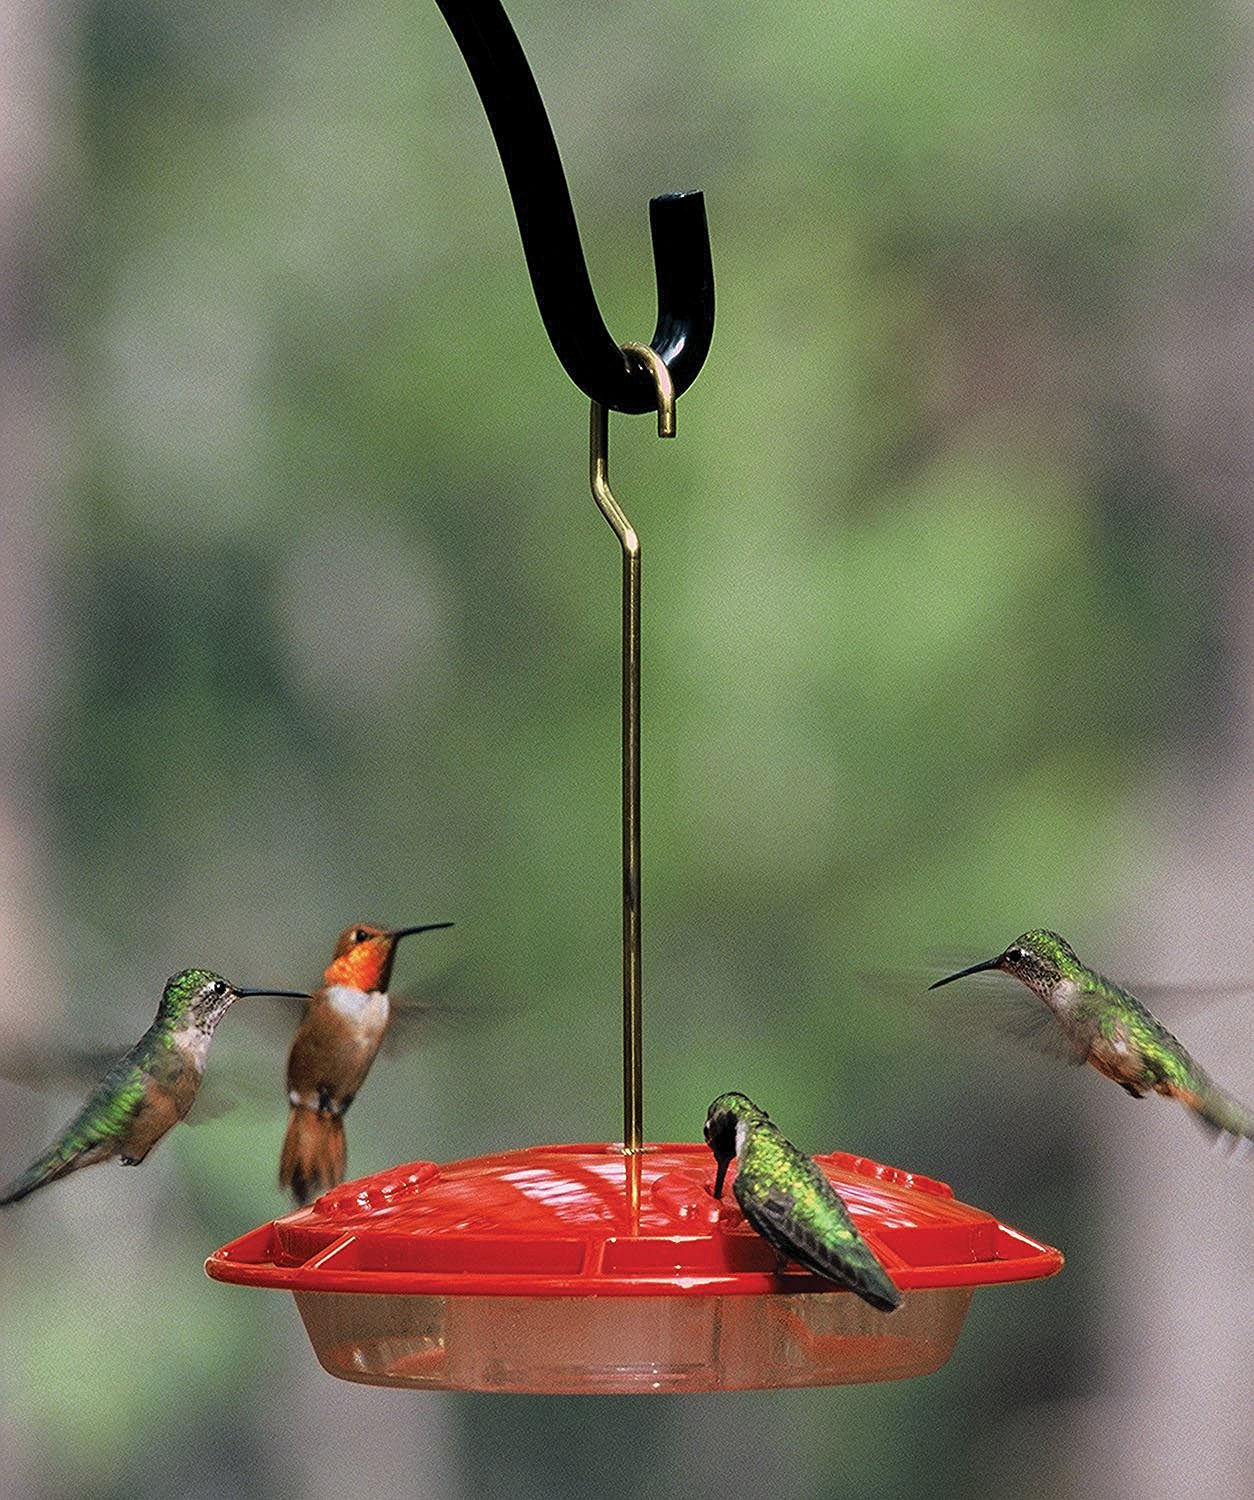 hummingbirds at feeder - when do hummingbirds migrate south